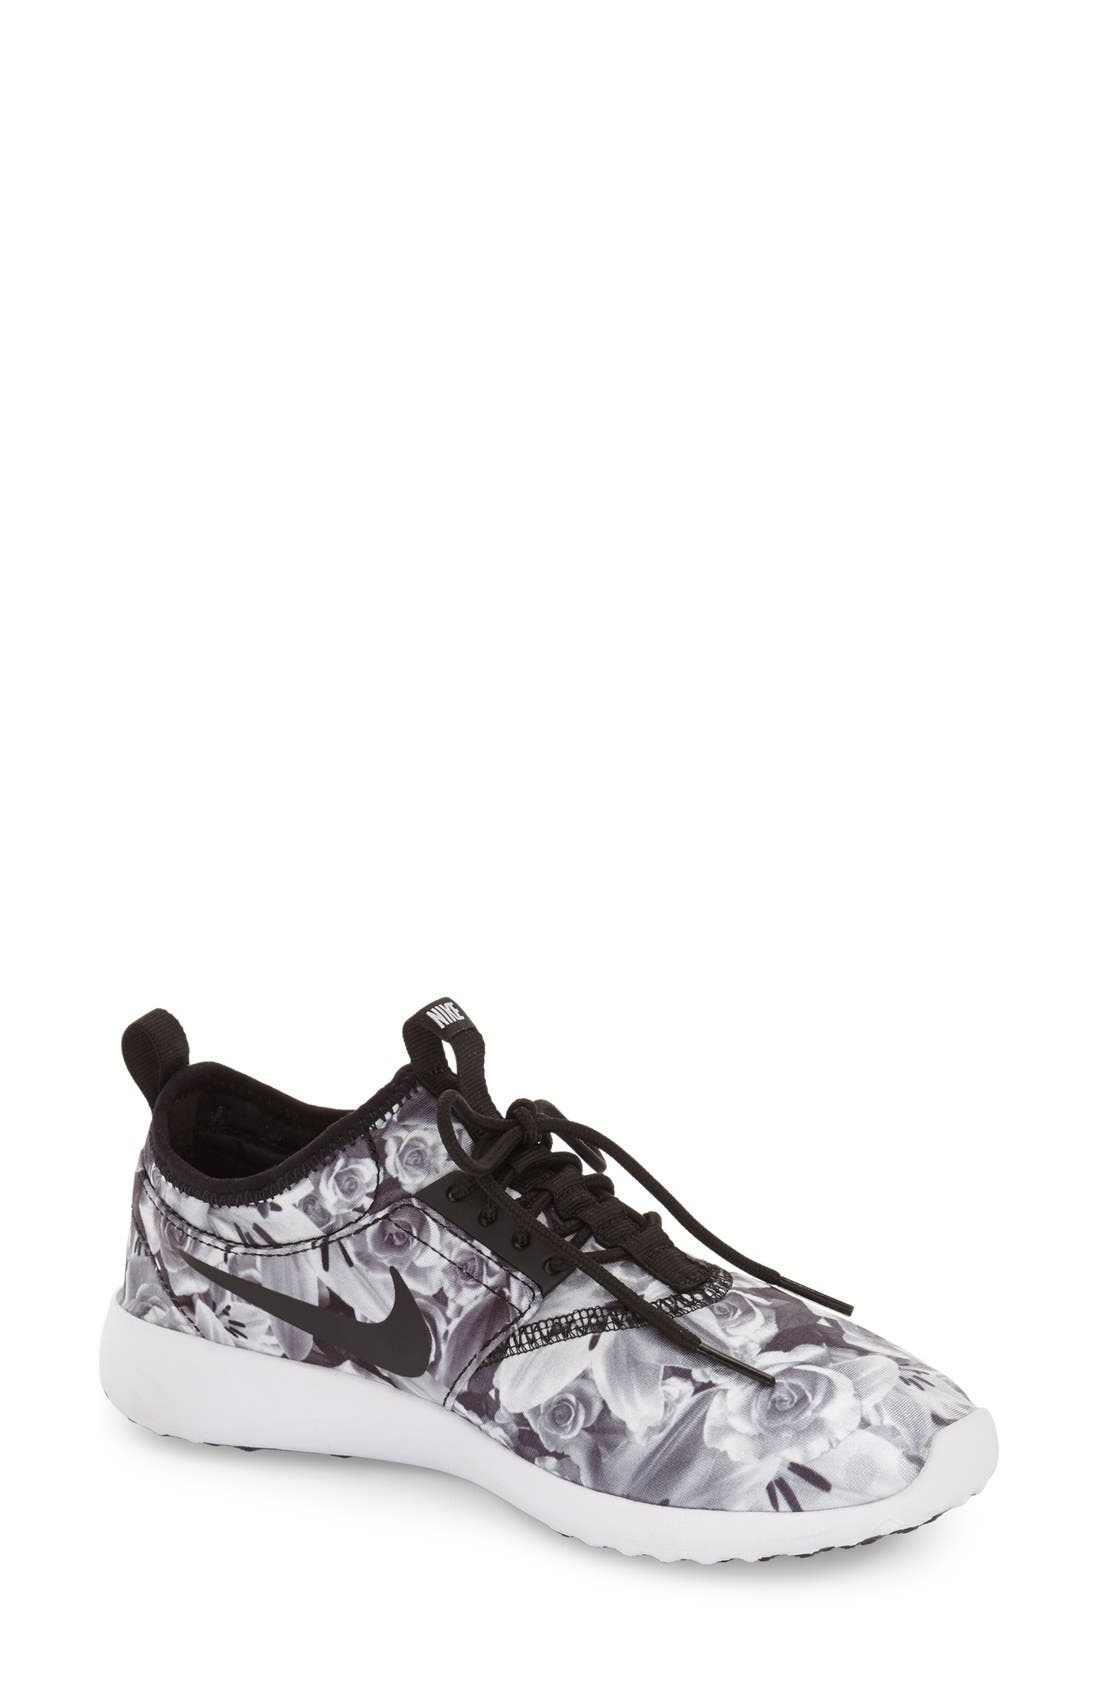 Main Image - Nike Juvenate Sneaker (Women)